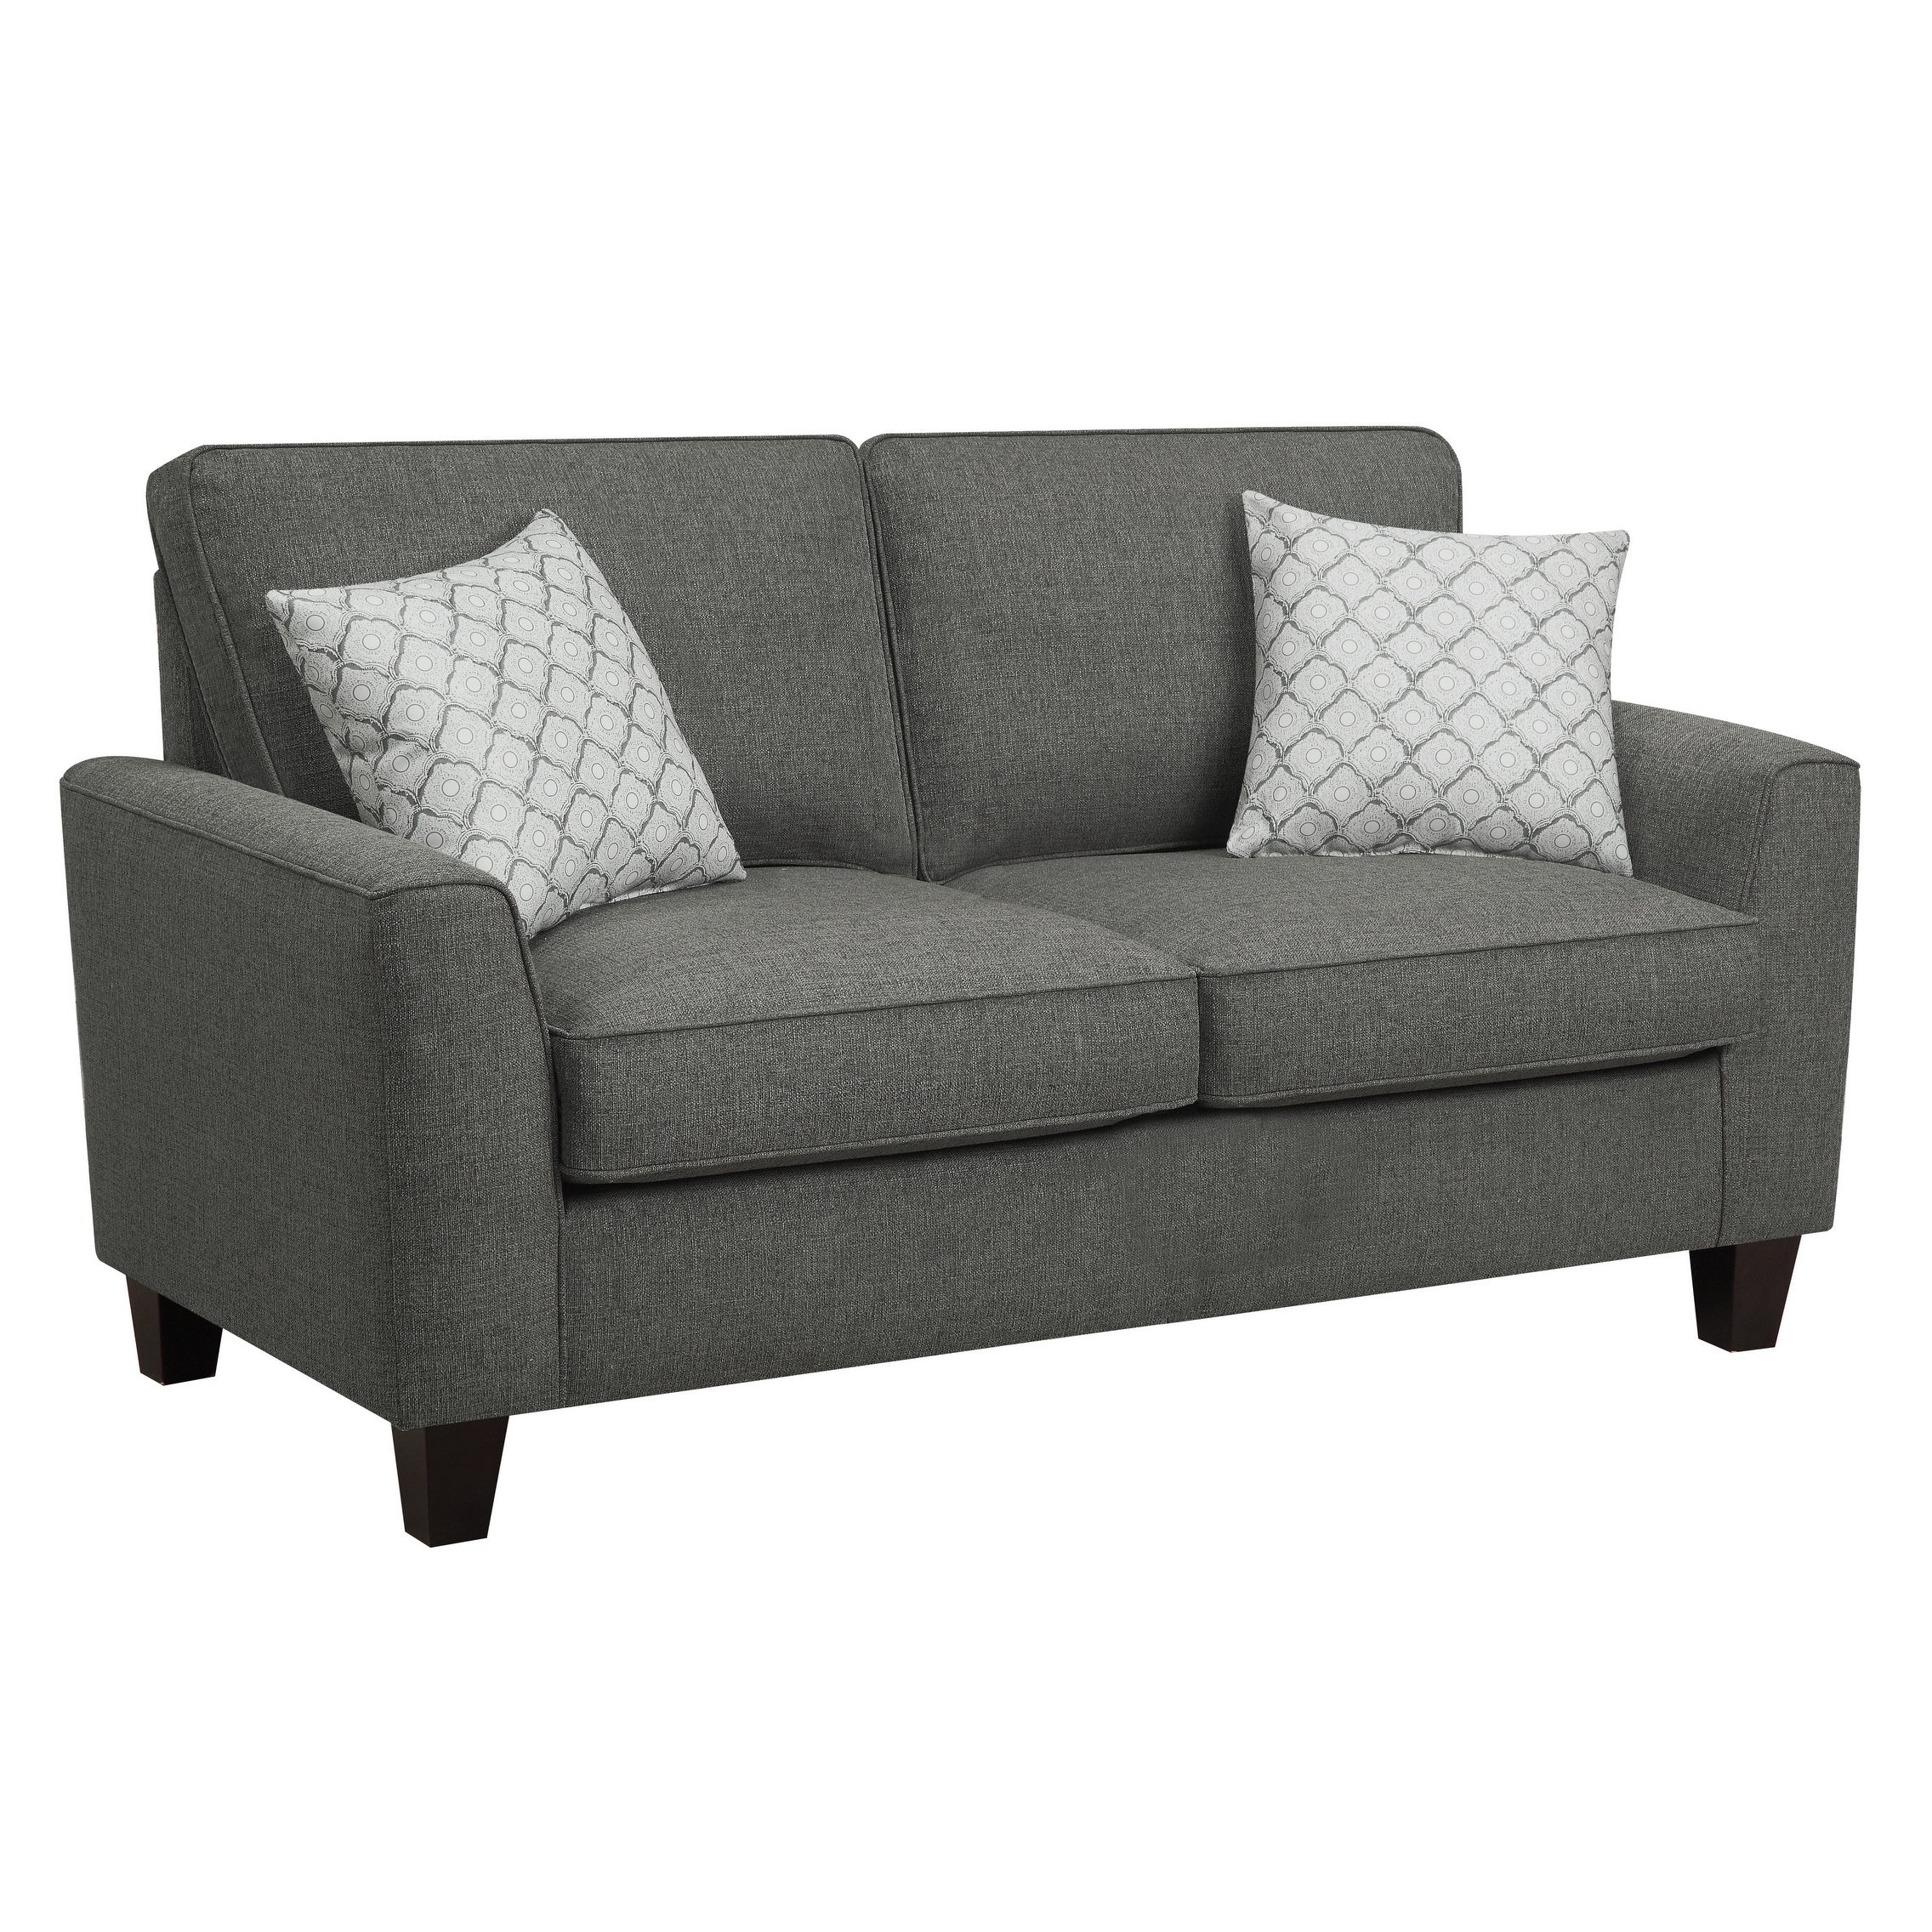 Alan Dark Grey Hardwood 61-inch Loveseat